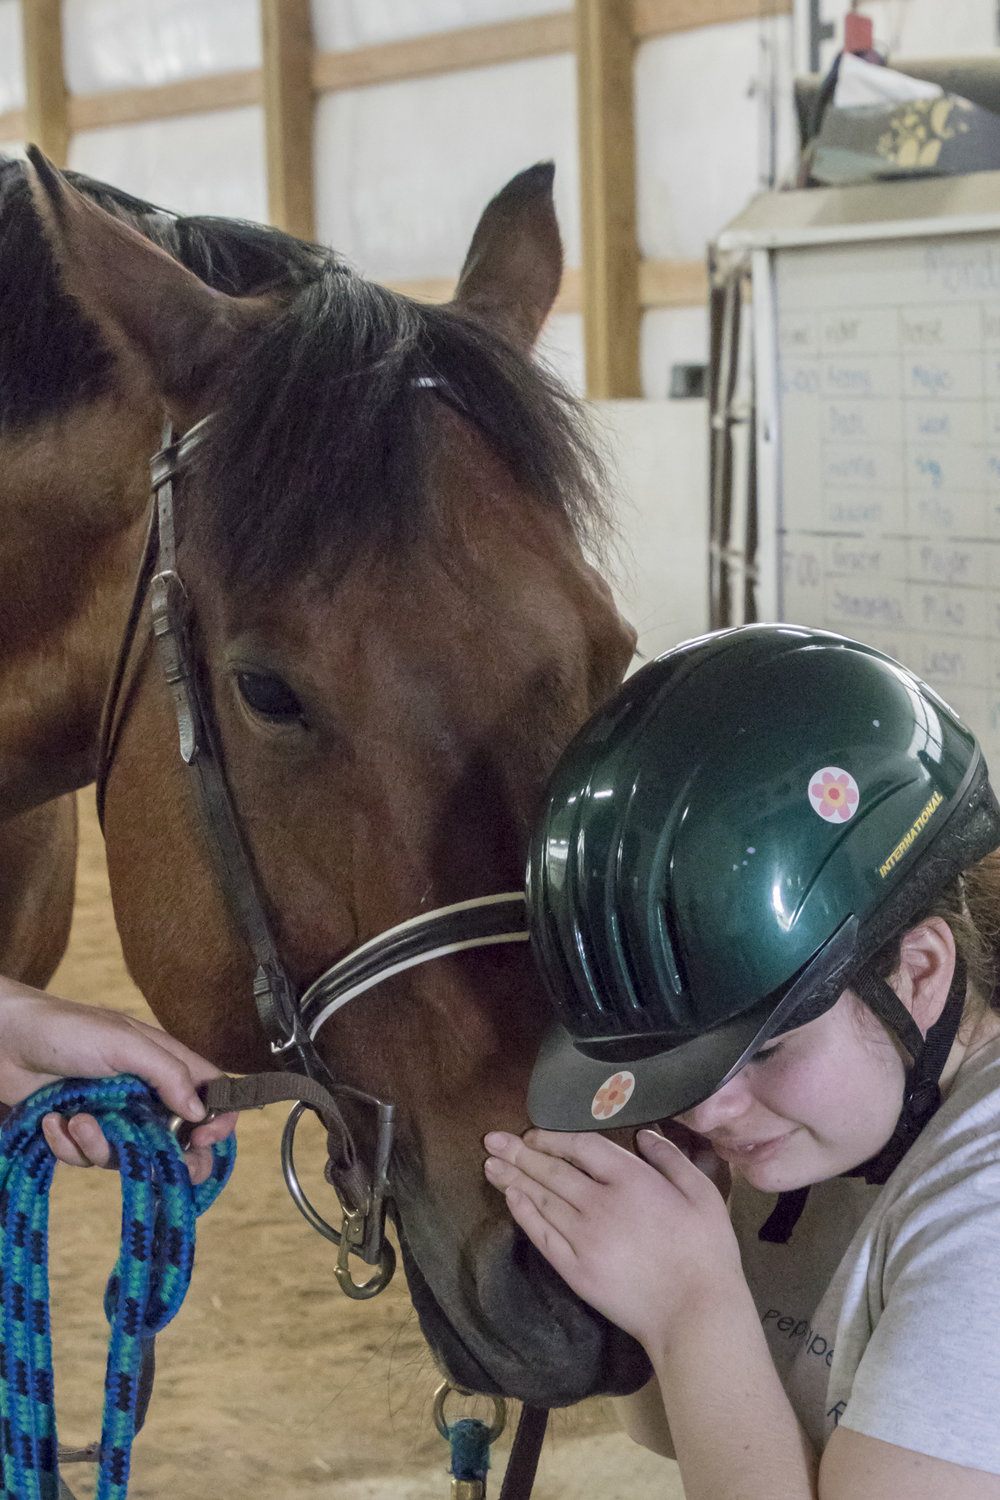 """B Smiley - """"Mr Perfect"""" is my nickname—because…I'm a handsome red roan Quarterhorse gelding. I take care of my riders by stopping and swishing my tail every time they get off balance."""